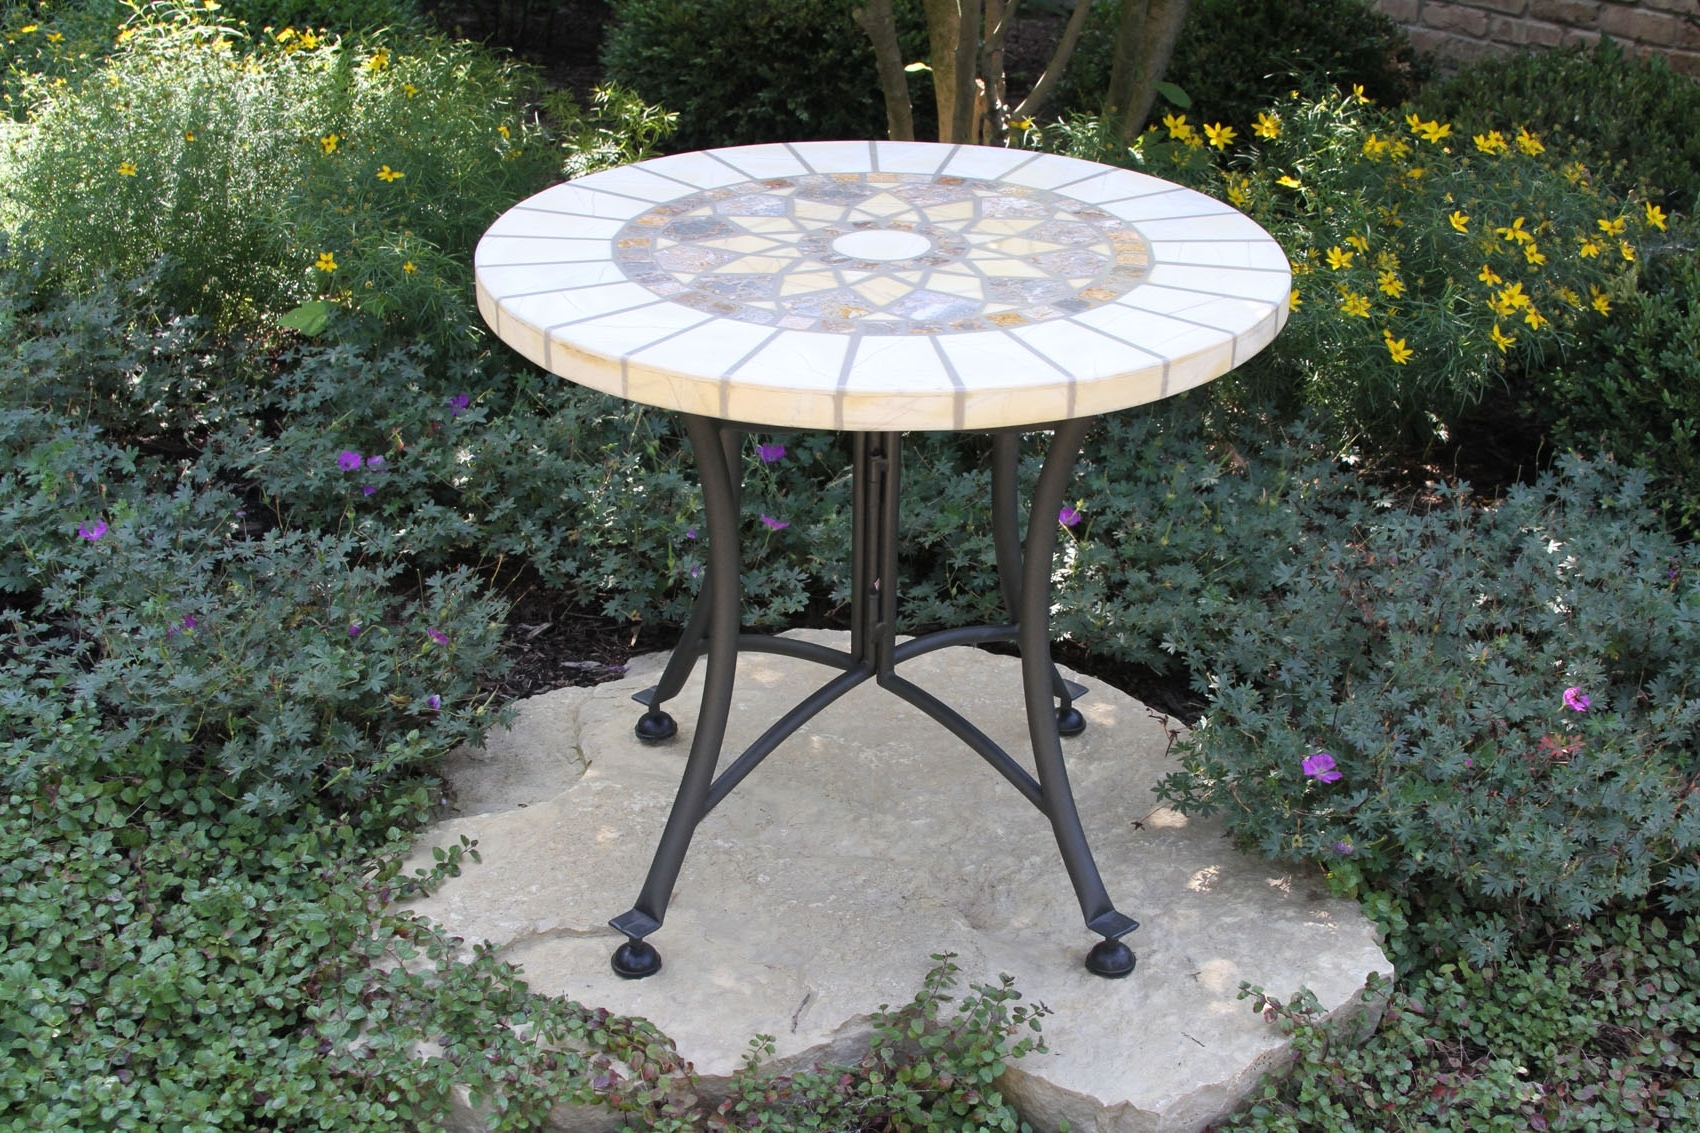 Most Recently Released Stone & The Hardwoods Collection From Outdoor Interiors With Regard To Patio Umbrellas With Accent Table (View 16 of 20)